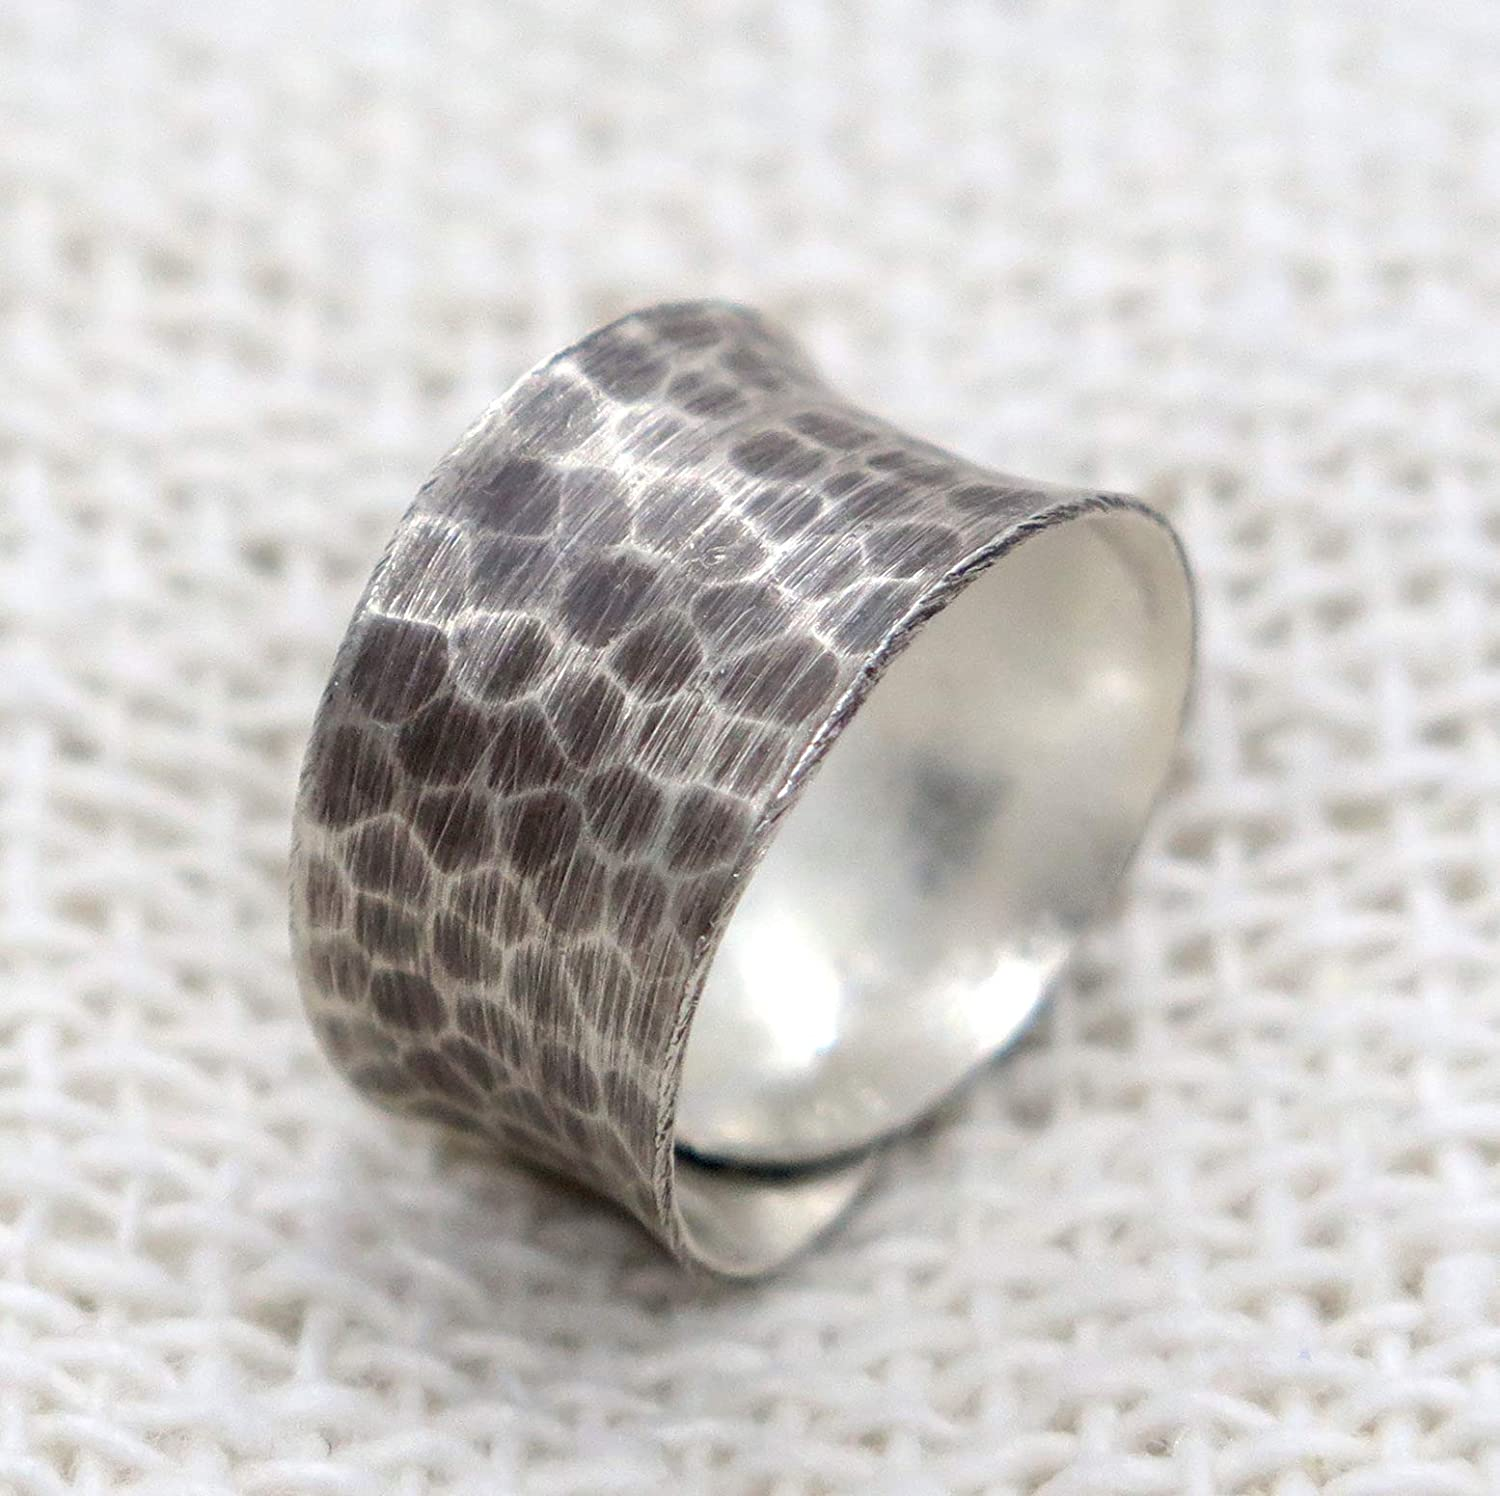 Hammered Sterling Silver Wide Band Ring, Handmade Oxidized Silver Convex Adjustable Wrap Band Ring, Also as Thumb ring